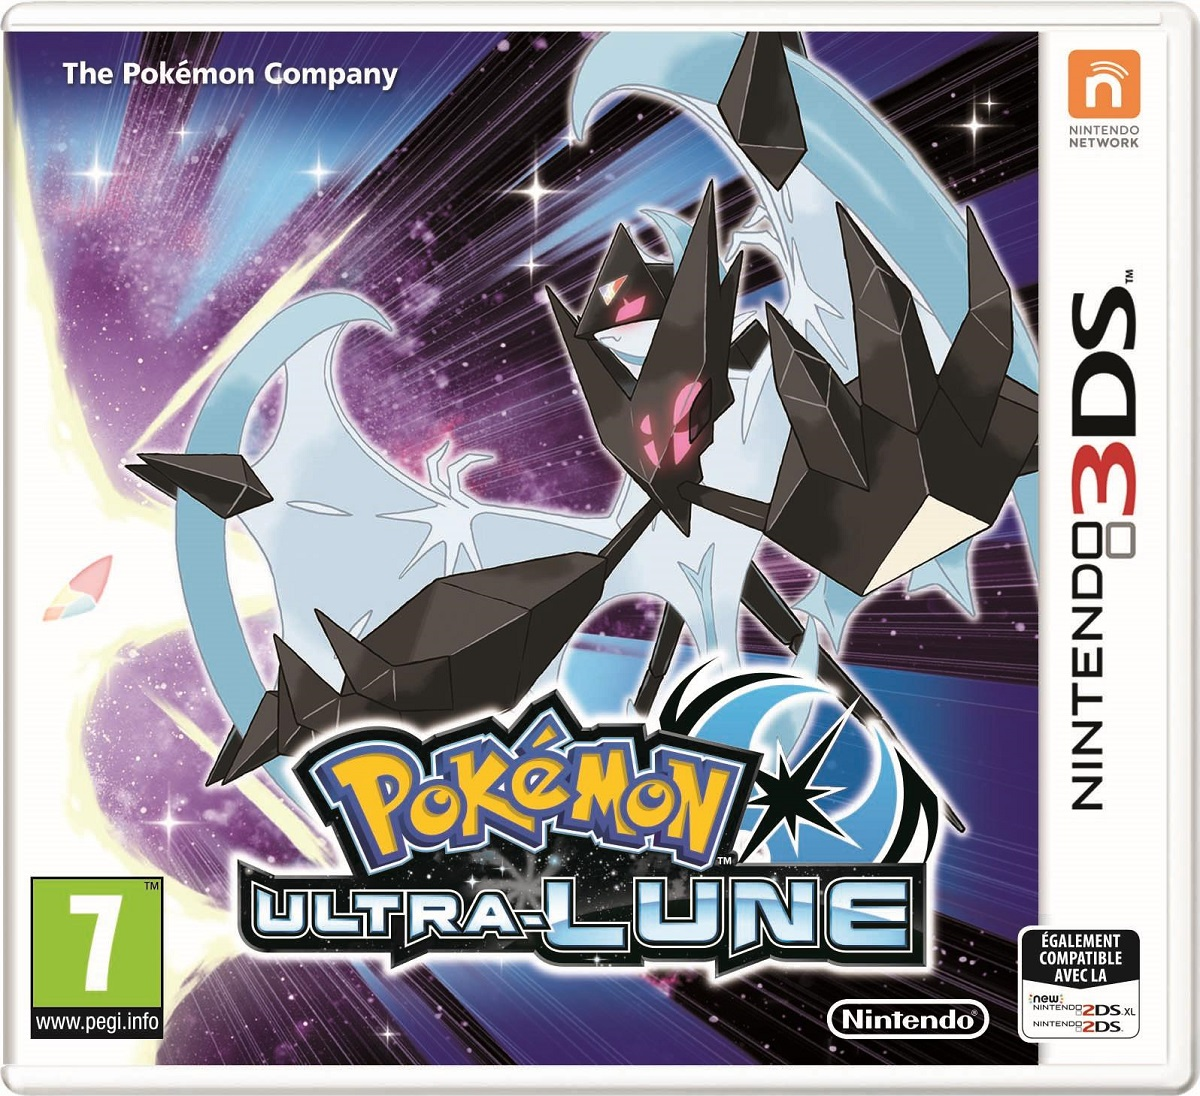 https://www.backtothegeek.com/wp-content/uploads/2017/08/Pokemon-Ultra-Lune-Nintendo-Game-Freaks-Jaquette.jpg